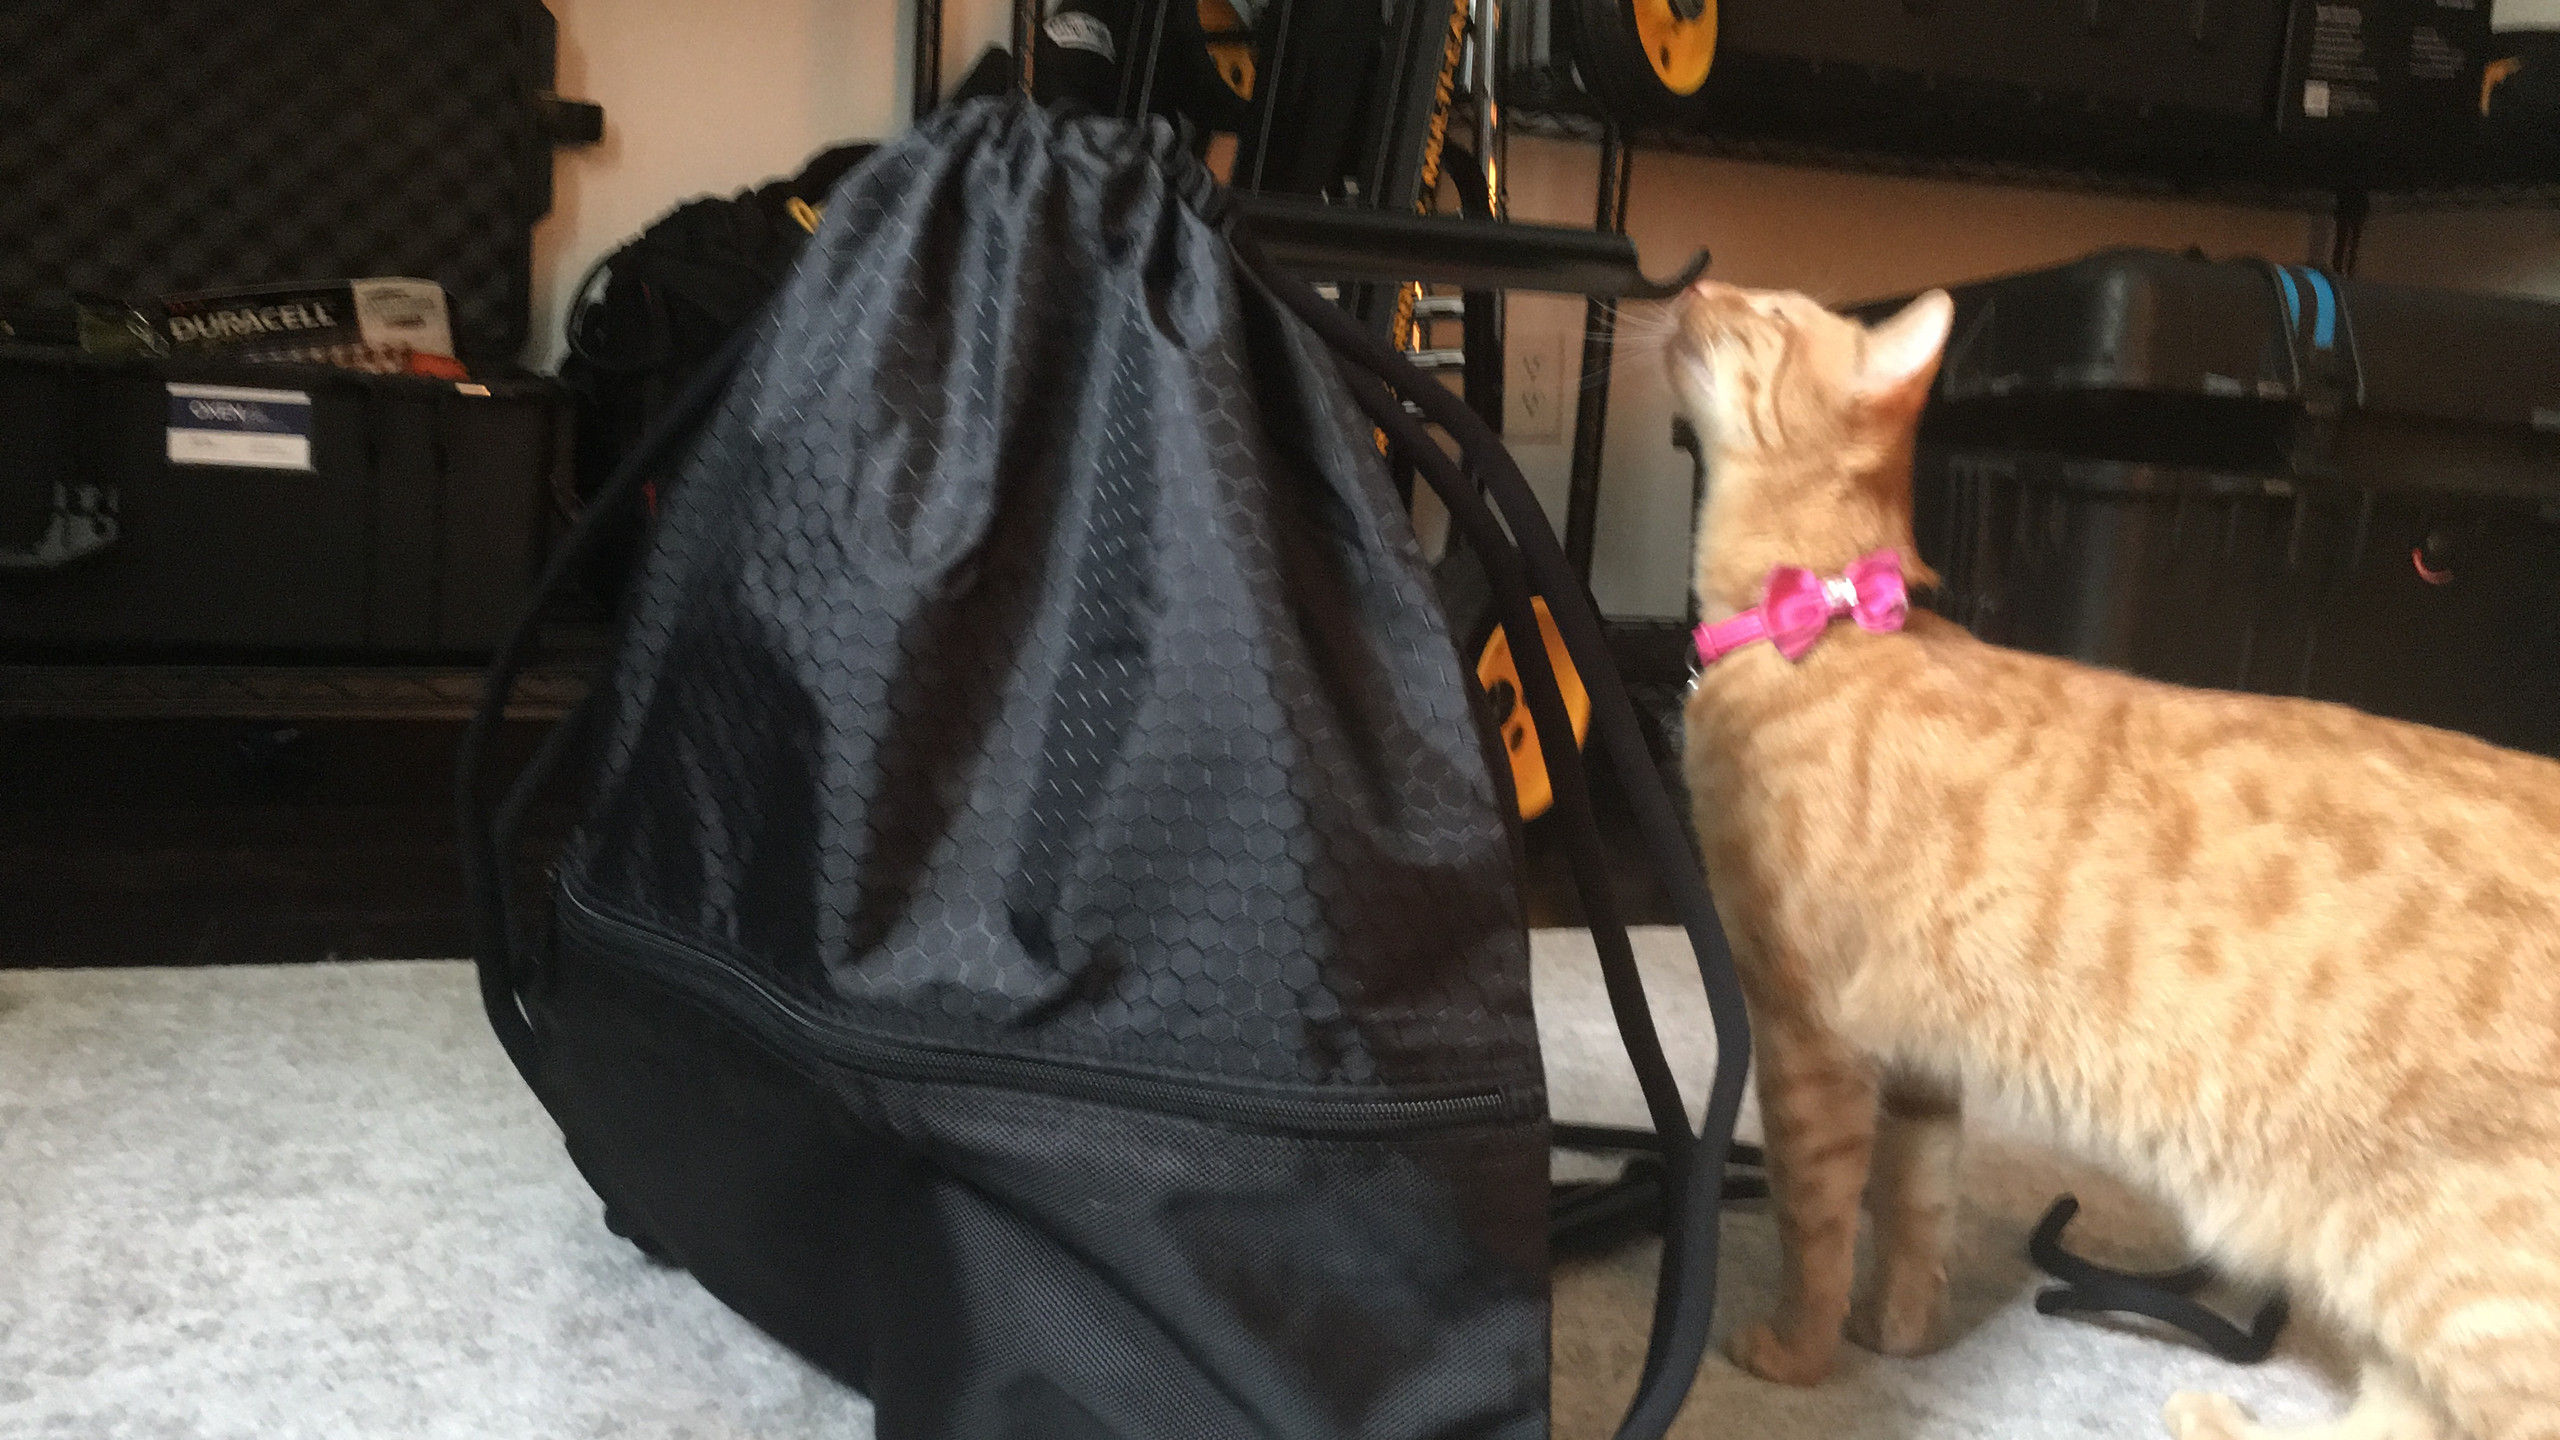 Final stand bag (cat approved)